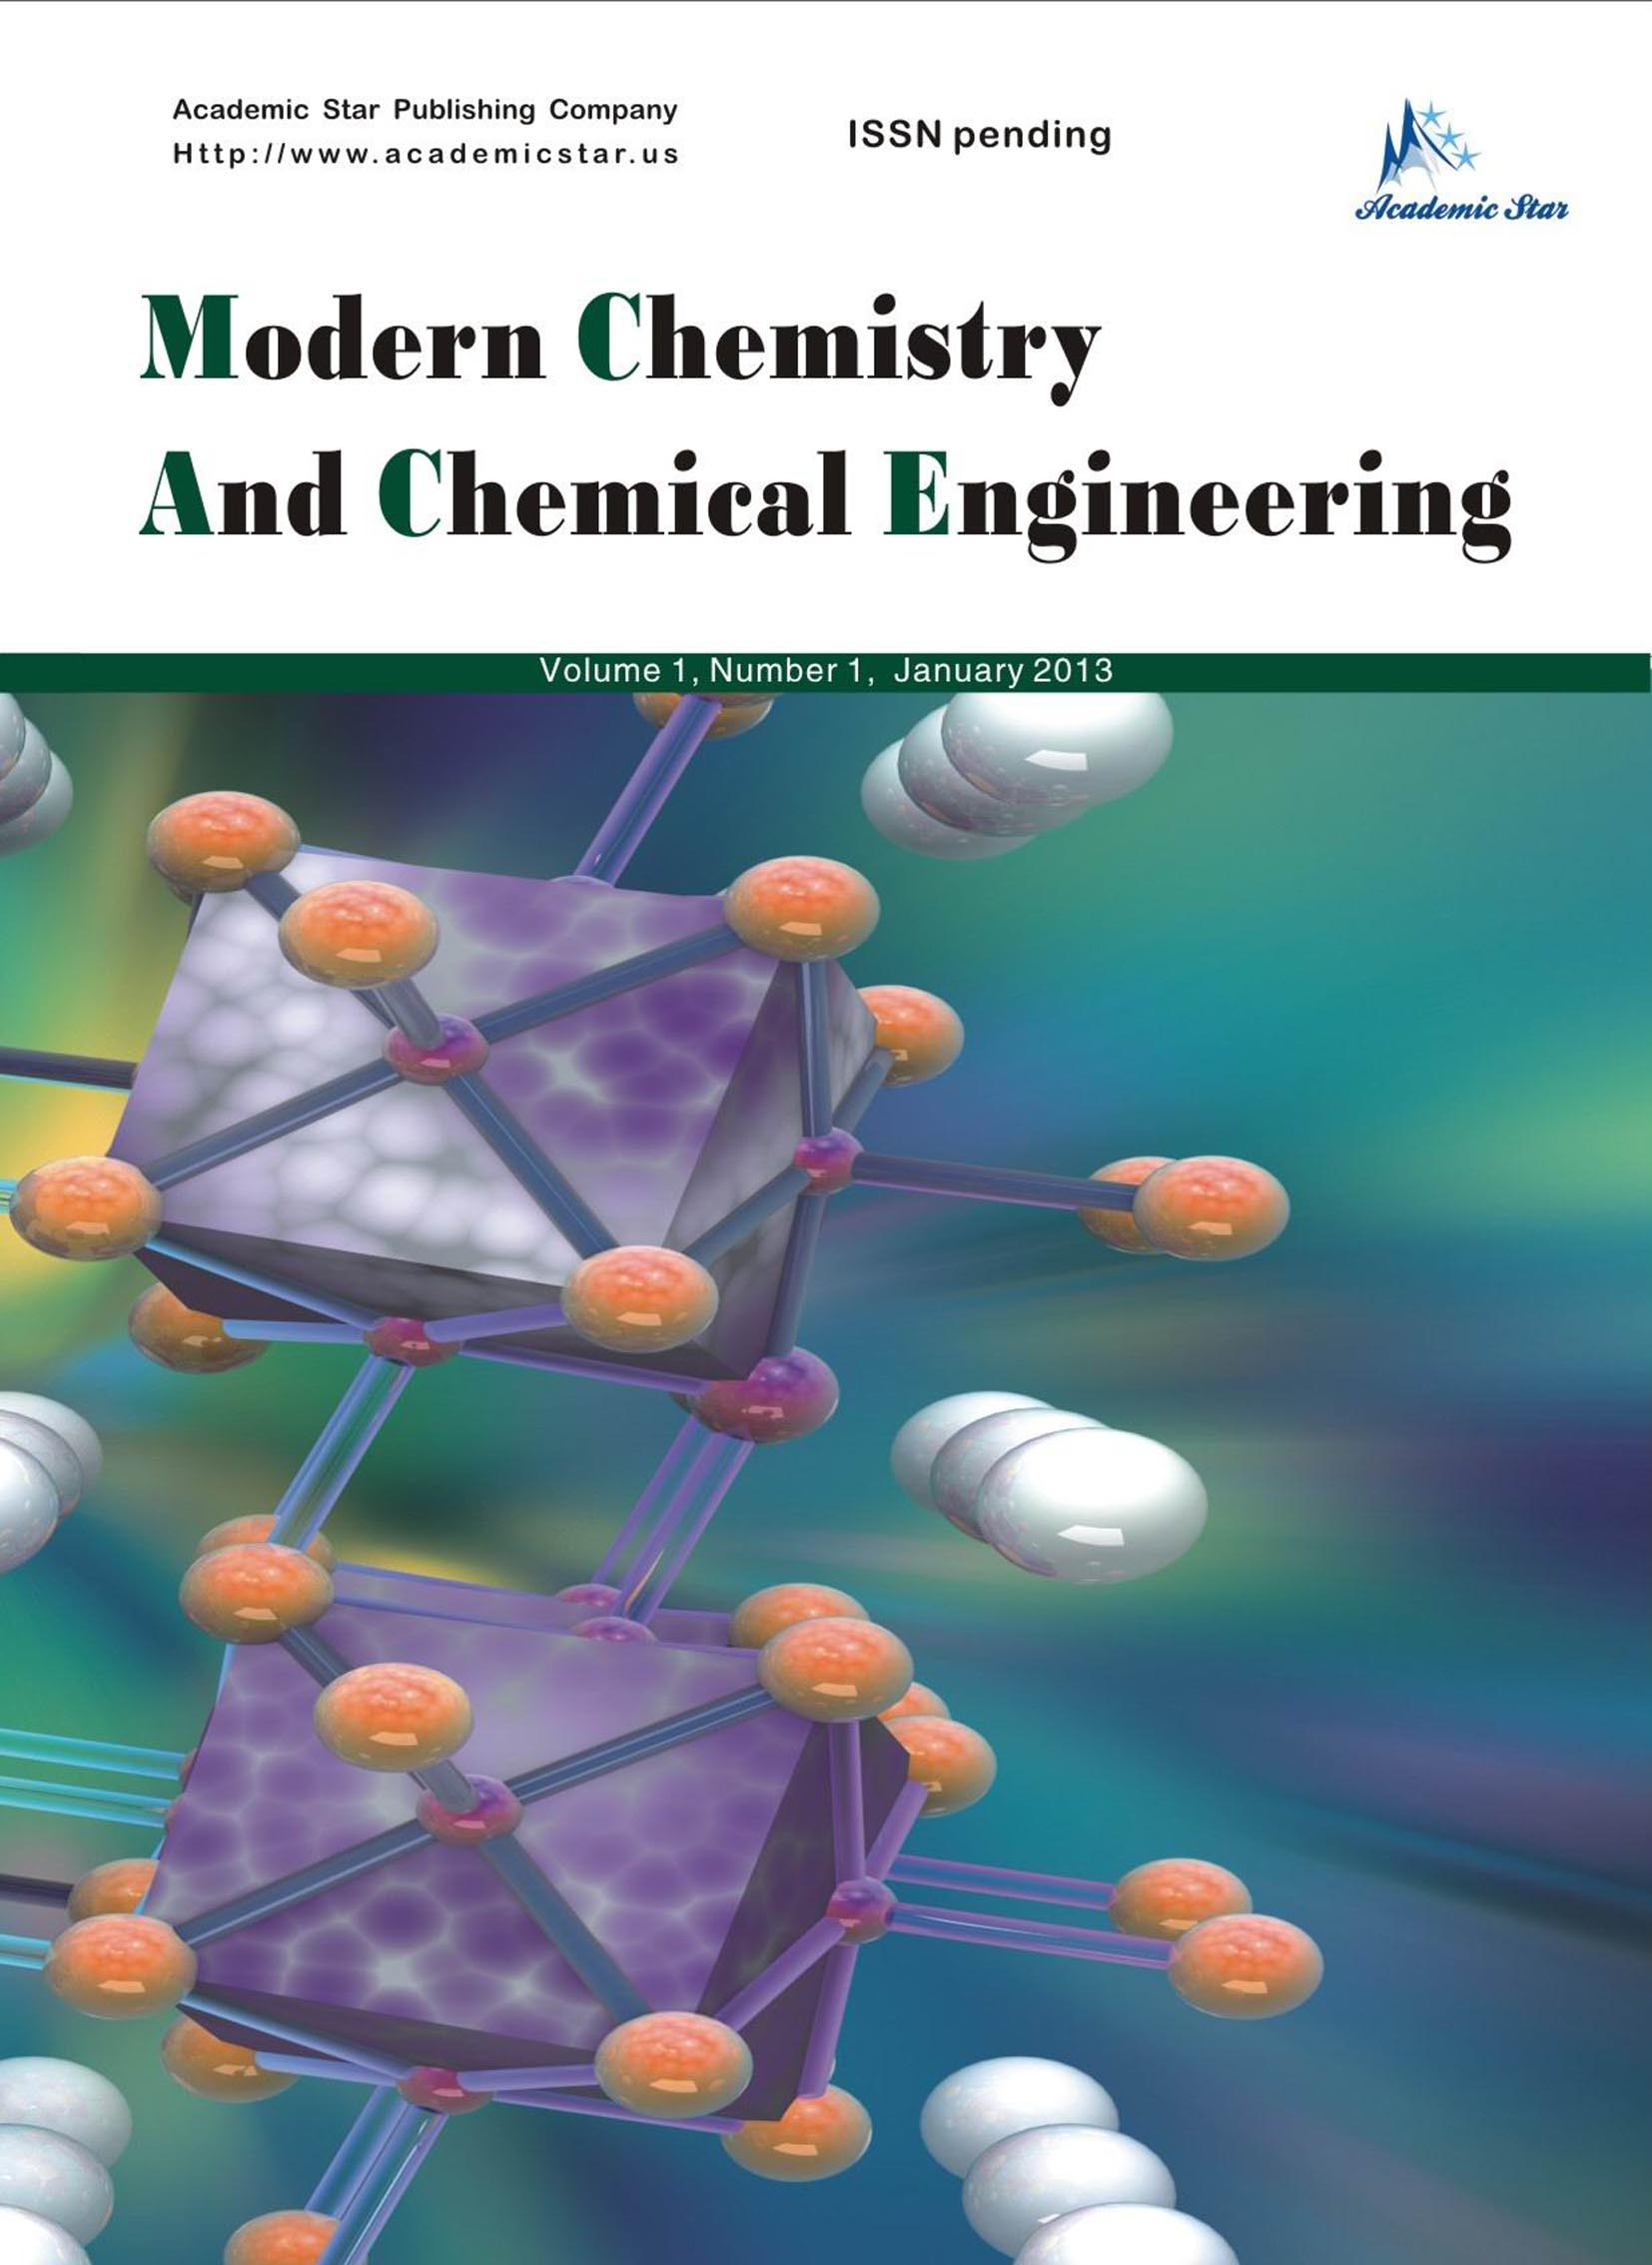 Modern Chemistry and Chemical Engineering